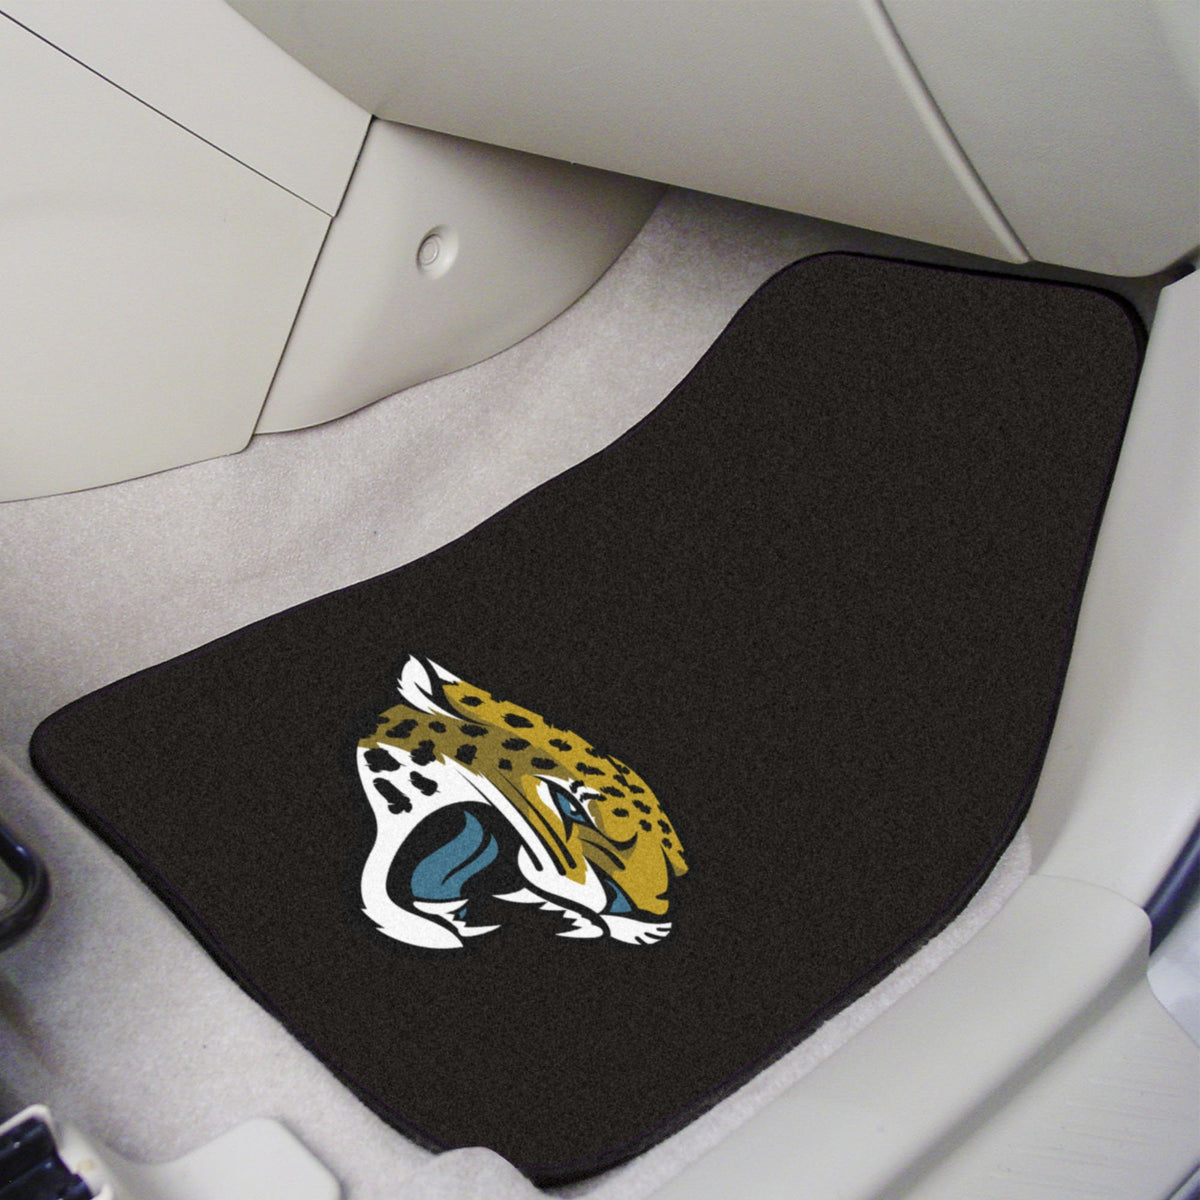 "NFL - 2-pc Carpet Car Mat Set, 17"" x 27"" NFL Mats, Front Car Mats, 2-pc Carpet Car Mat Set, NFL, Auto Fan Mats Jacksonville Jaguars"